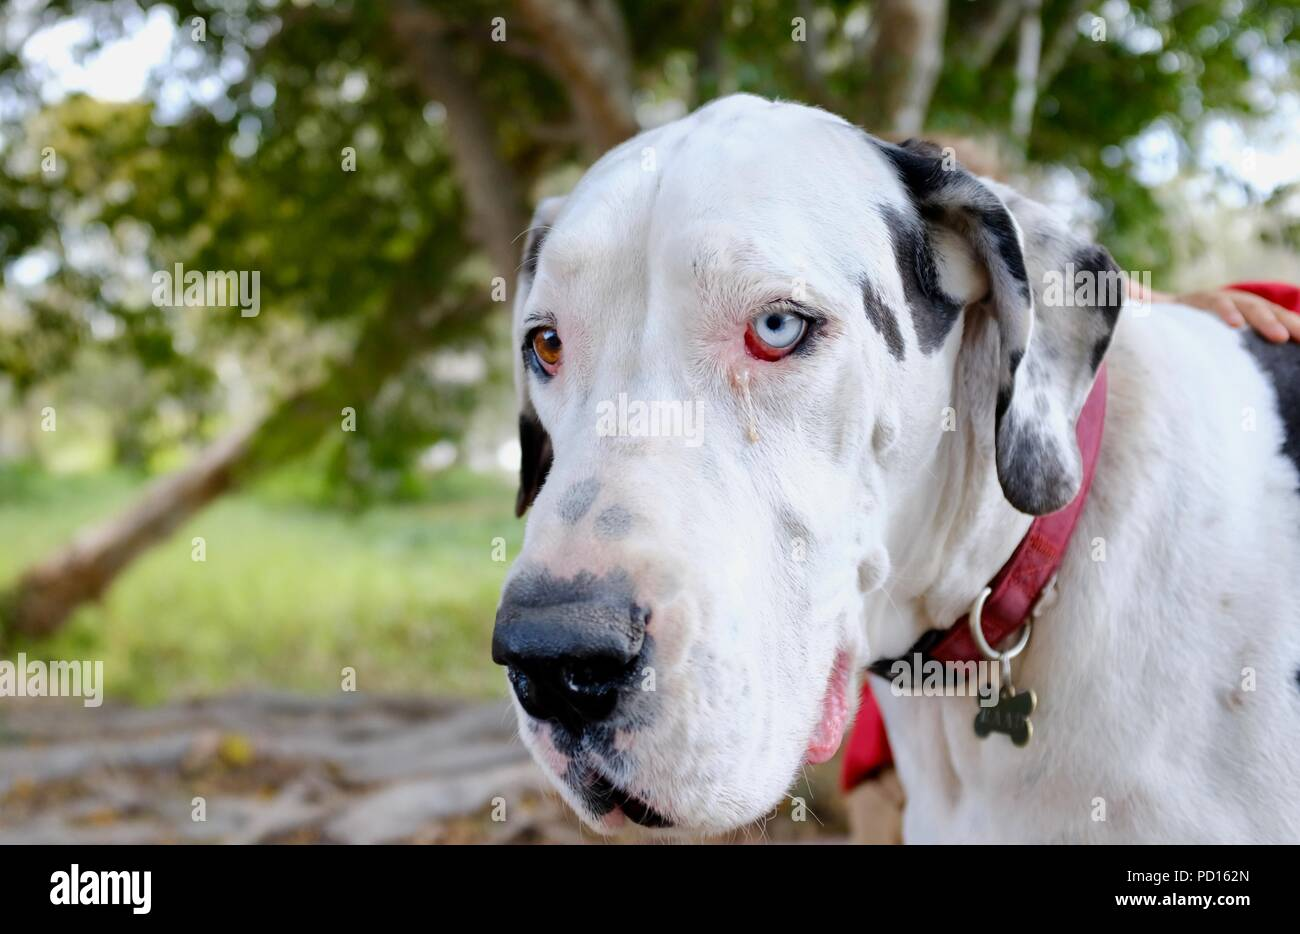 White and black great dane dog with heterochromia, Booroona walking trail on the Ross River, Rasmussen QLD 4815, Australia - Stock Image